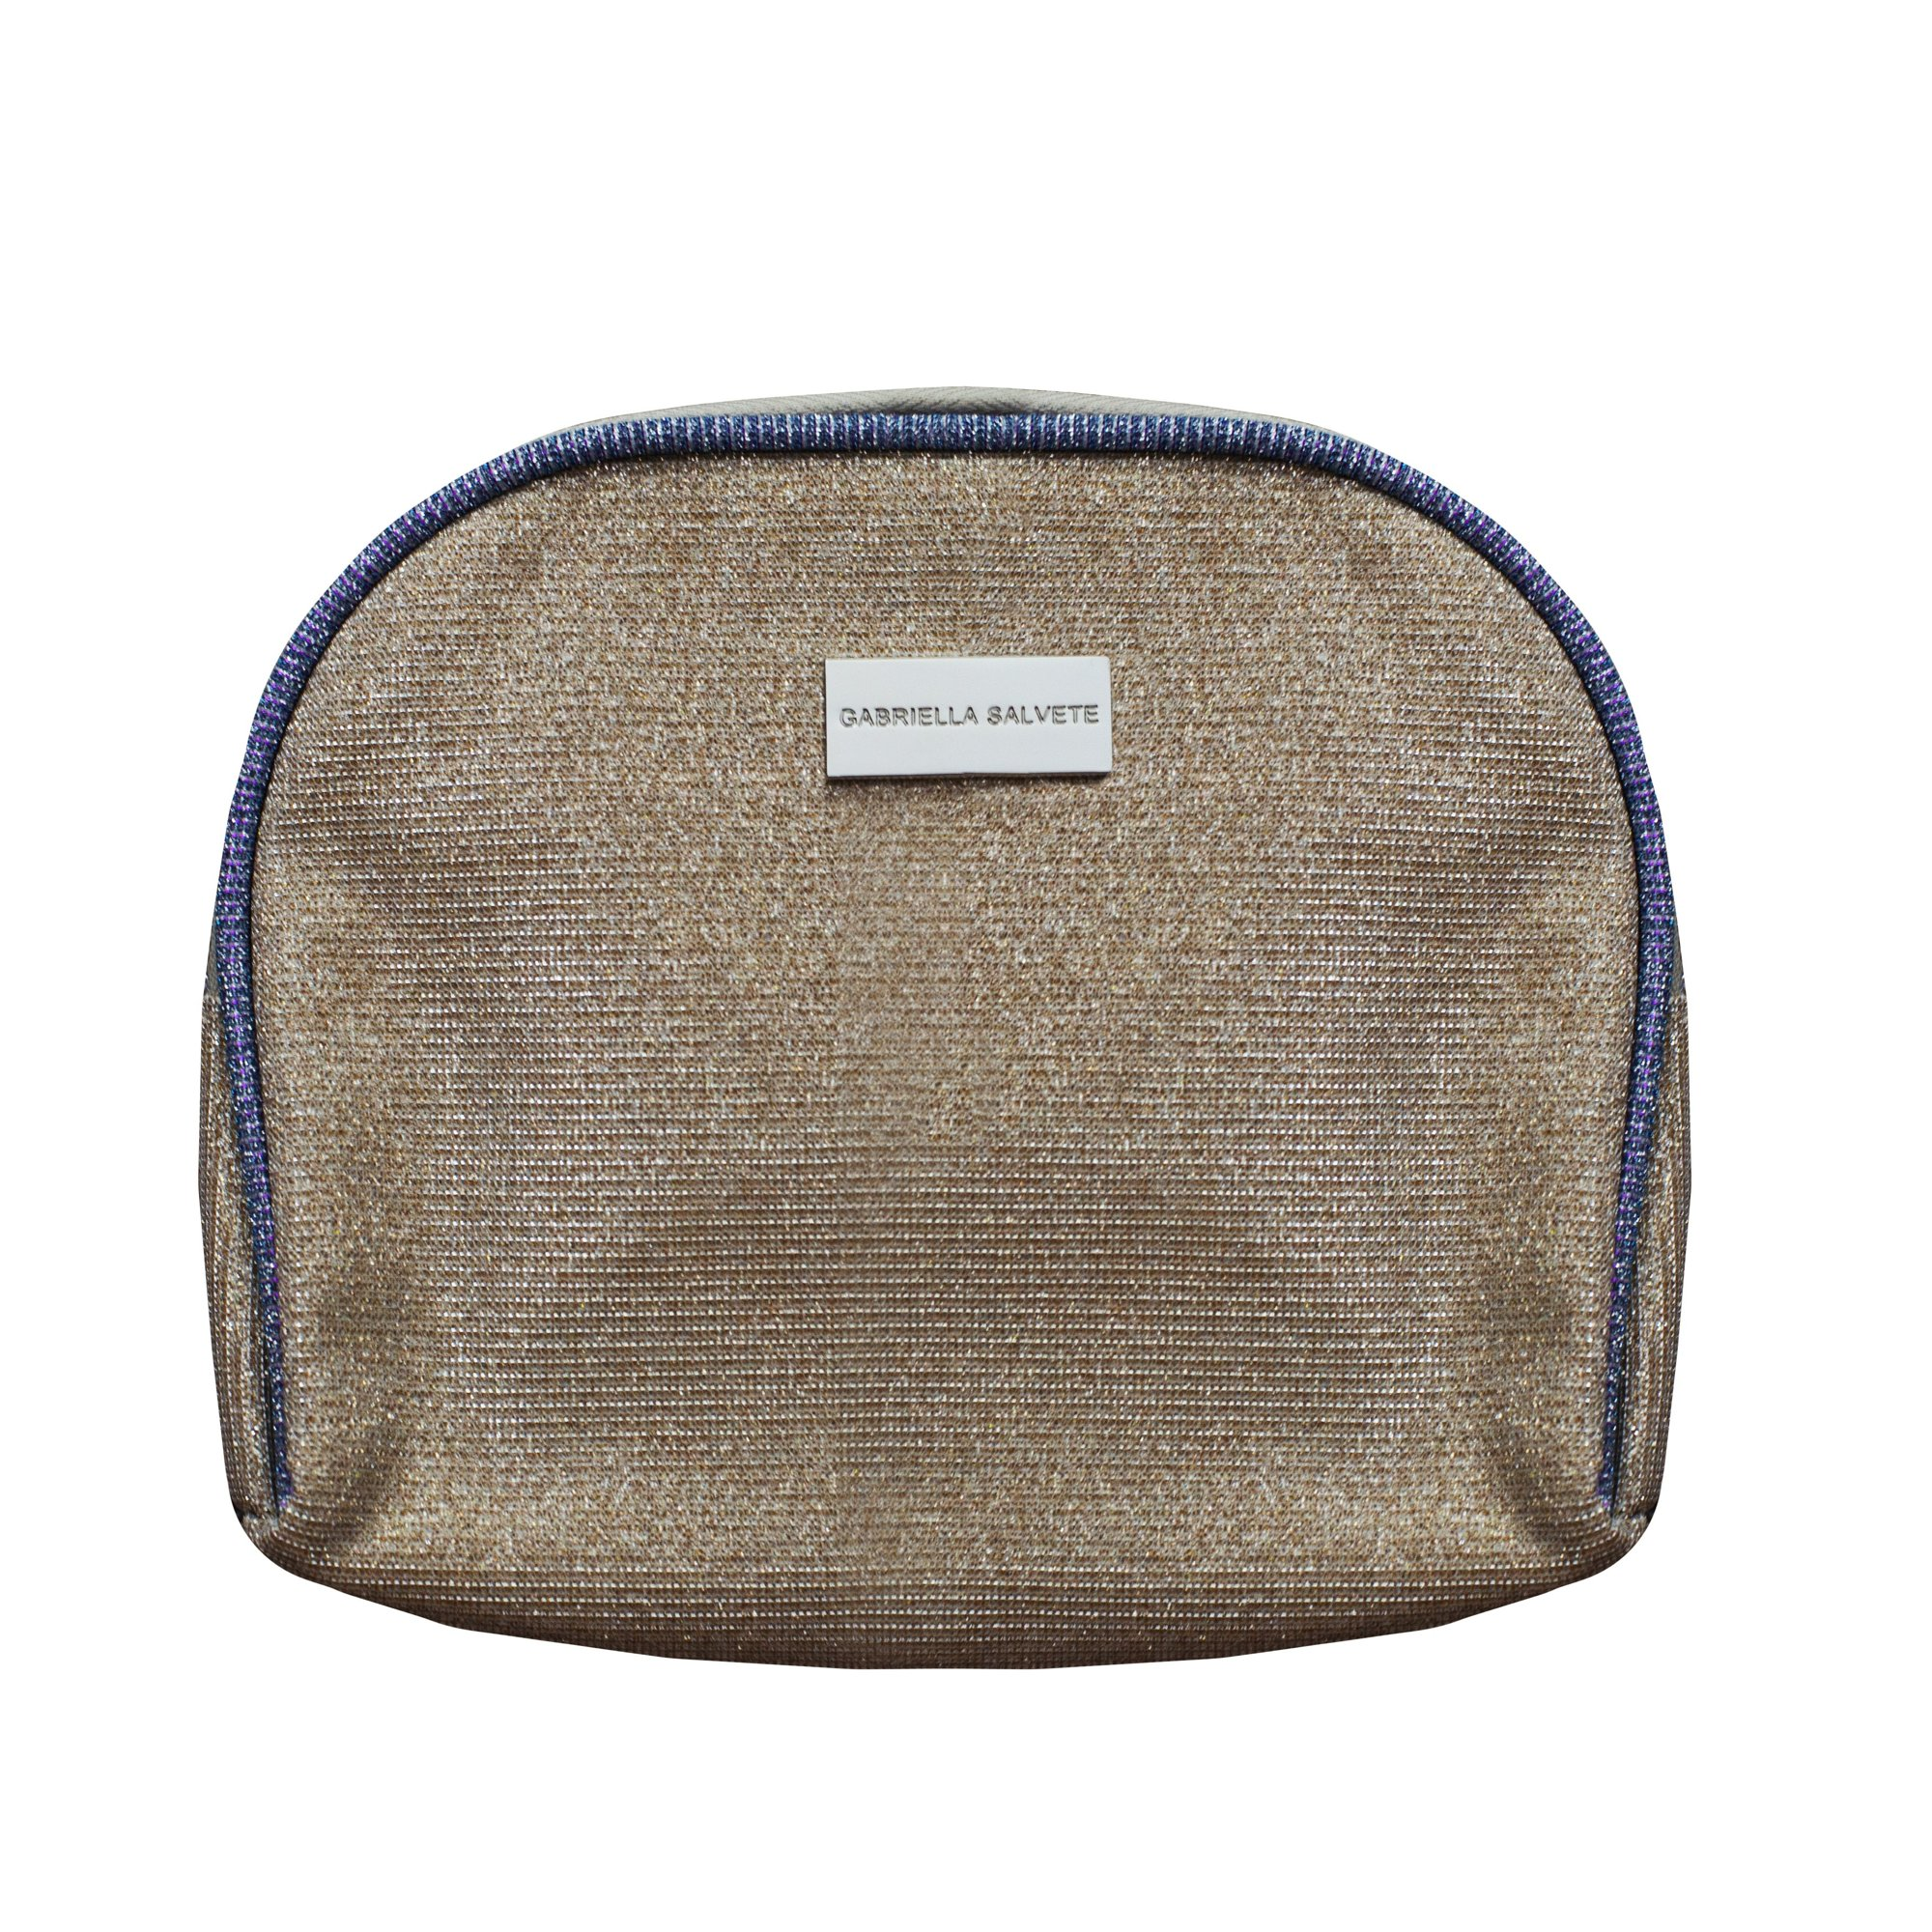 Gabriella Salvete TOOLS Small Cosmetic Bag, Kozmetická taštička 1ks